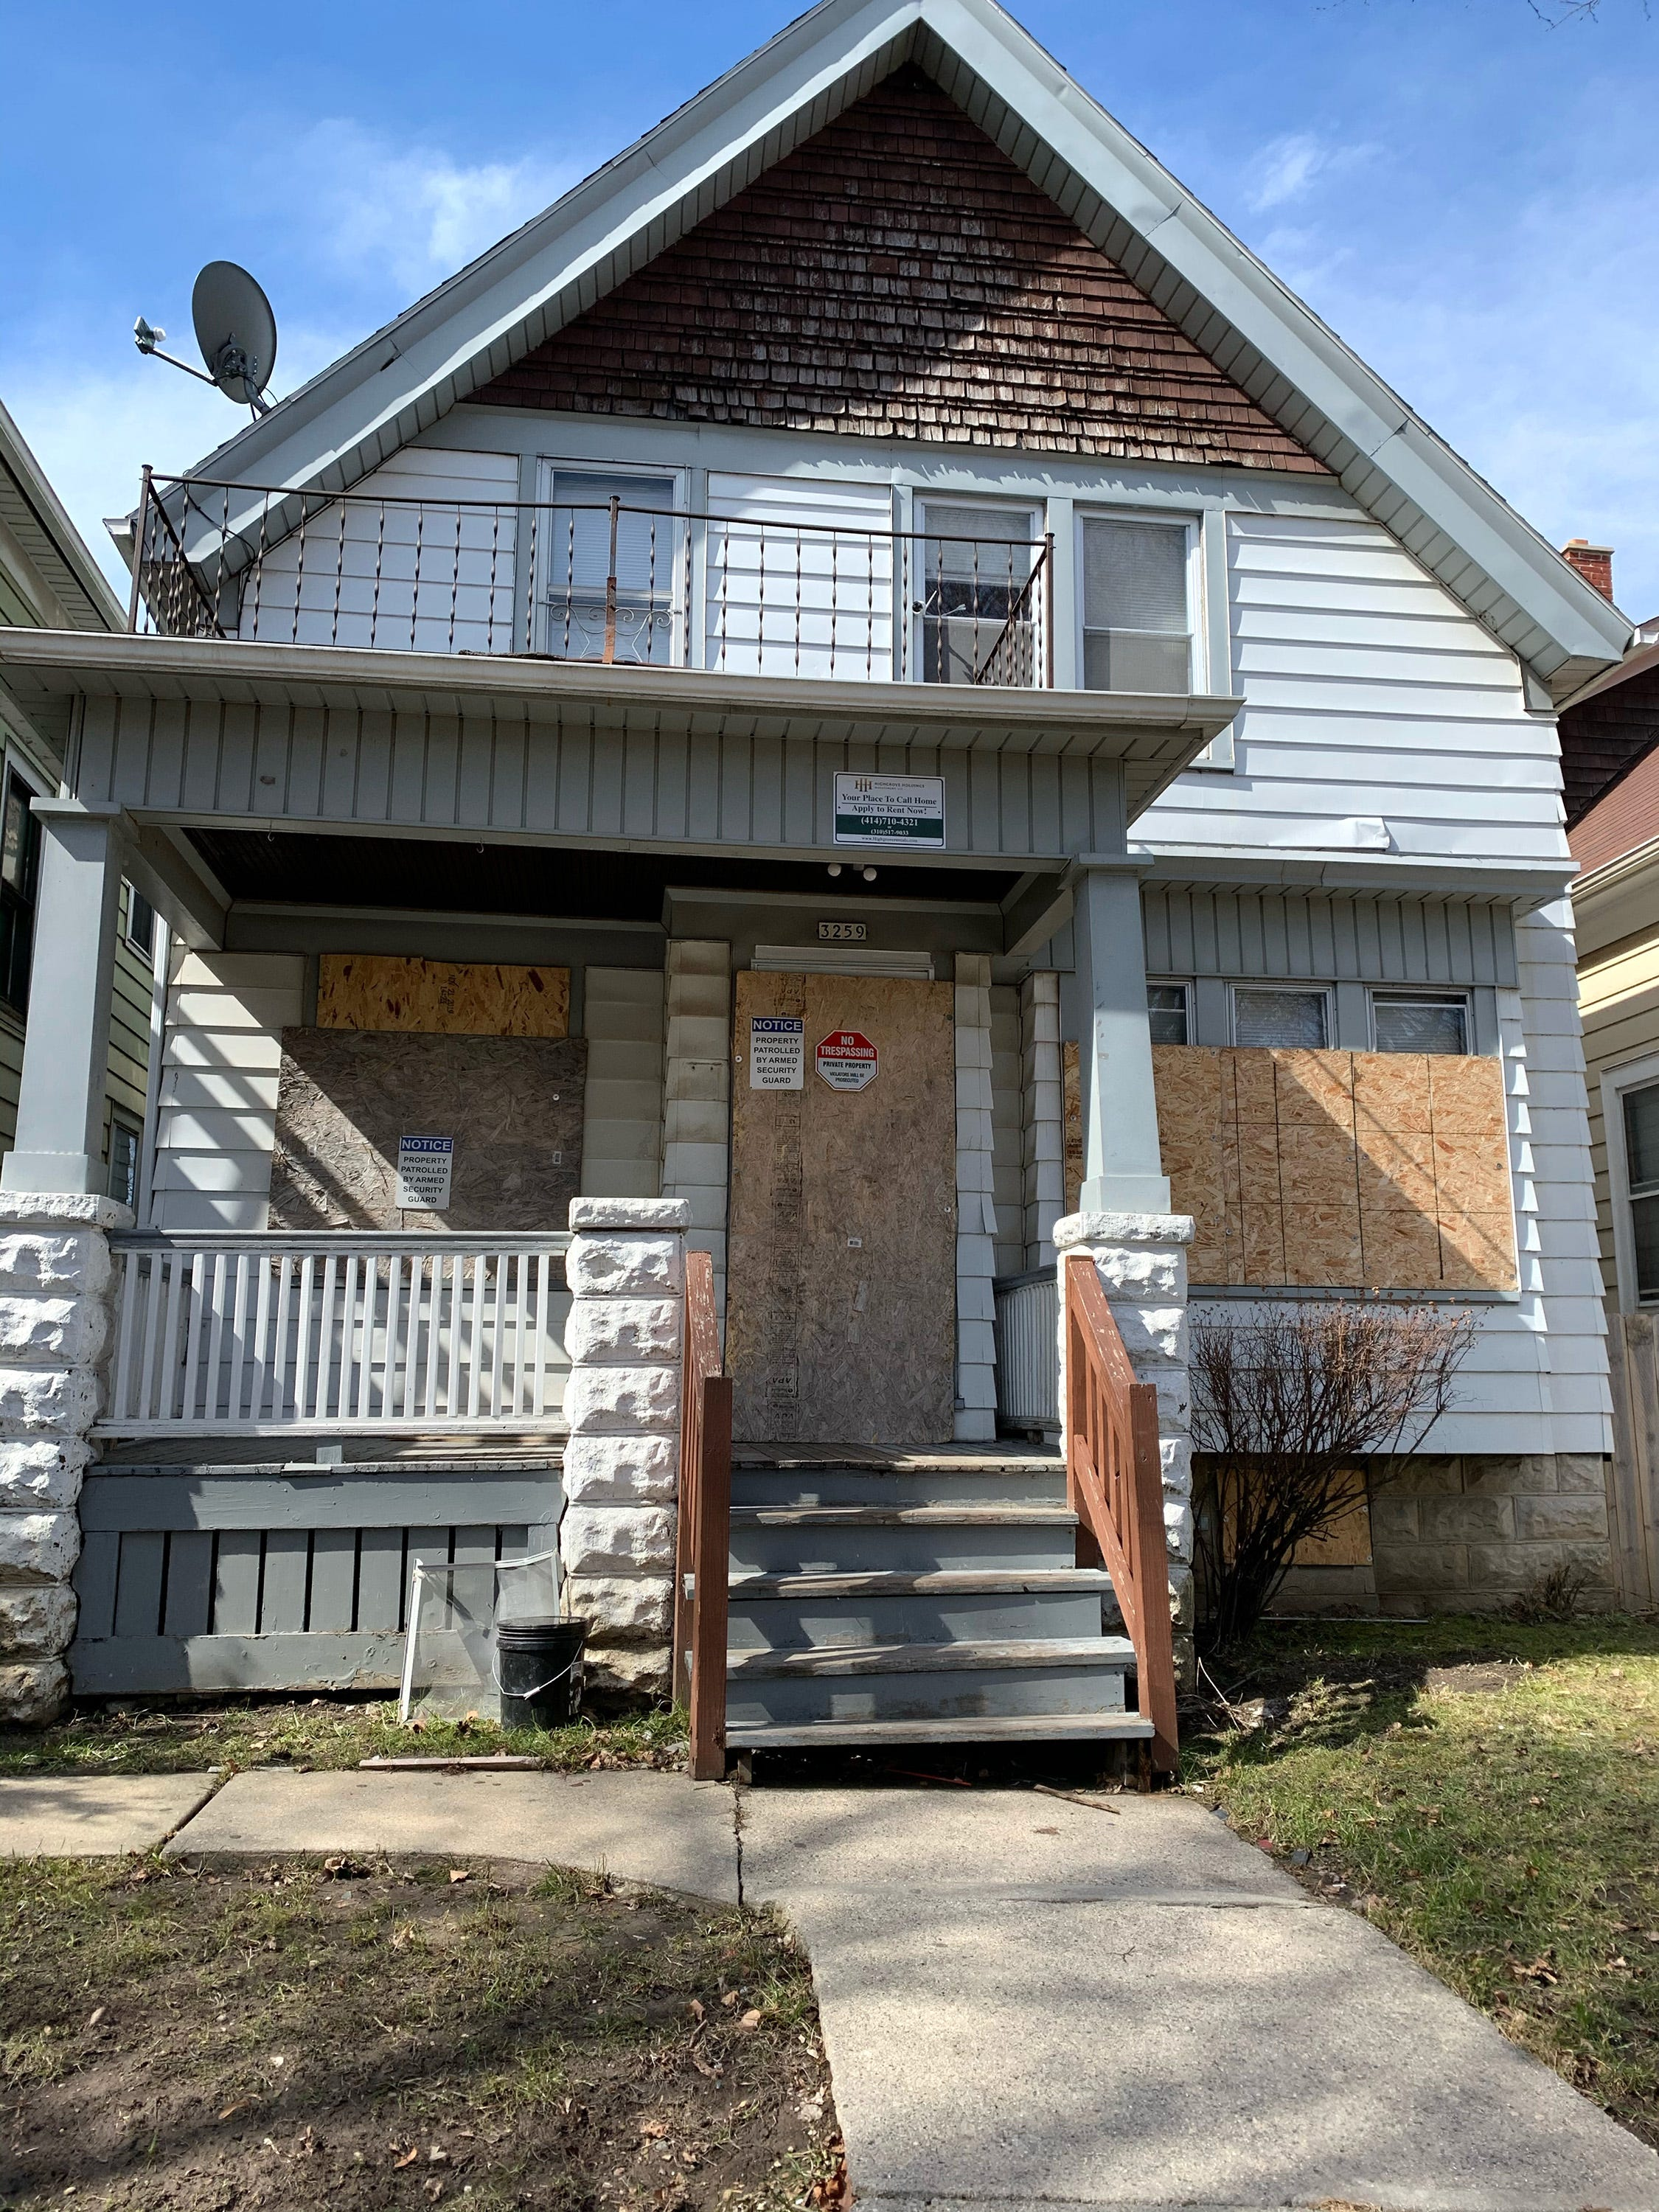 This house on the  3200 block of North Buffum Street recently acquired by an affiliate of Highgrove Holdings Management LLC, Torrance, California. Highgrove plans to renovate and rent it out. Highgrove has acquired about 135 properties in Milwaukee, including about a half-dozen on this block.